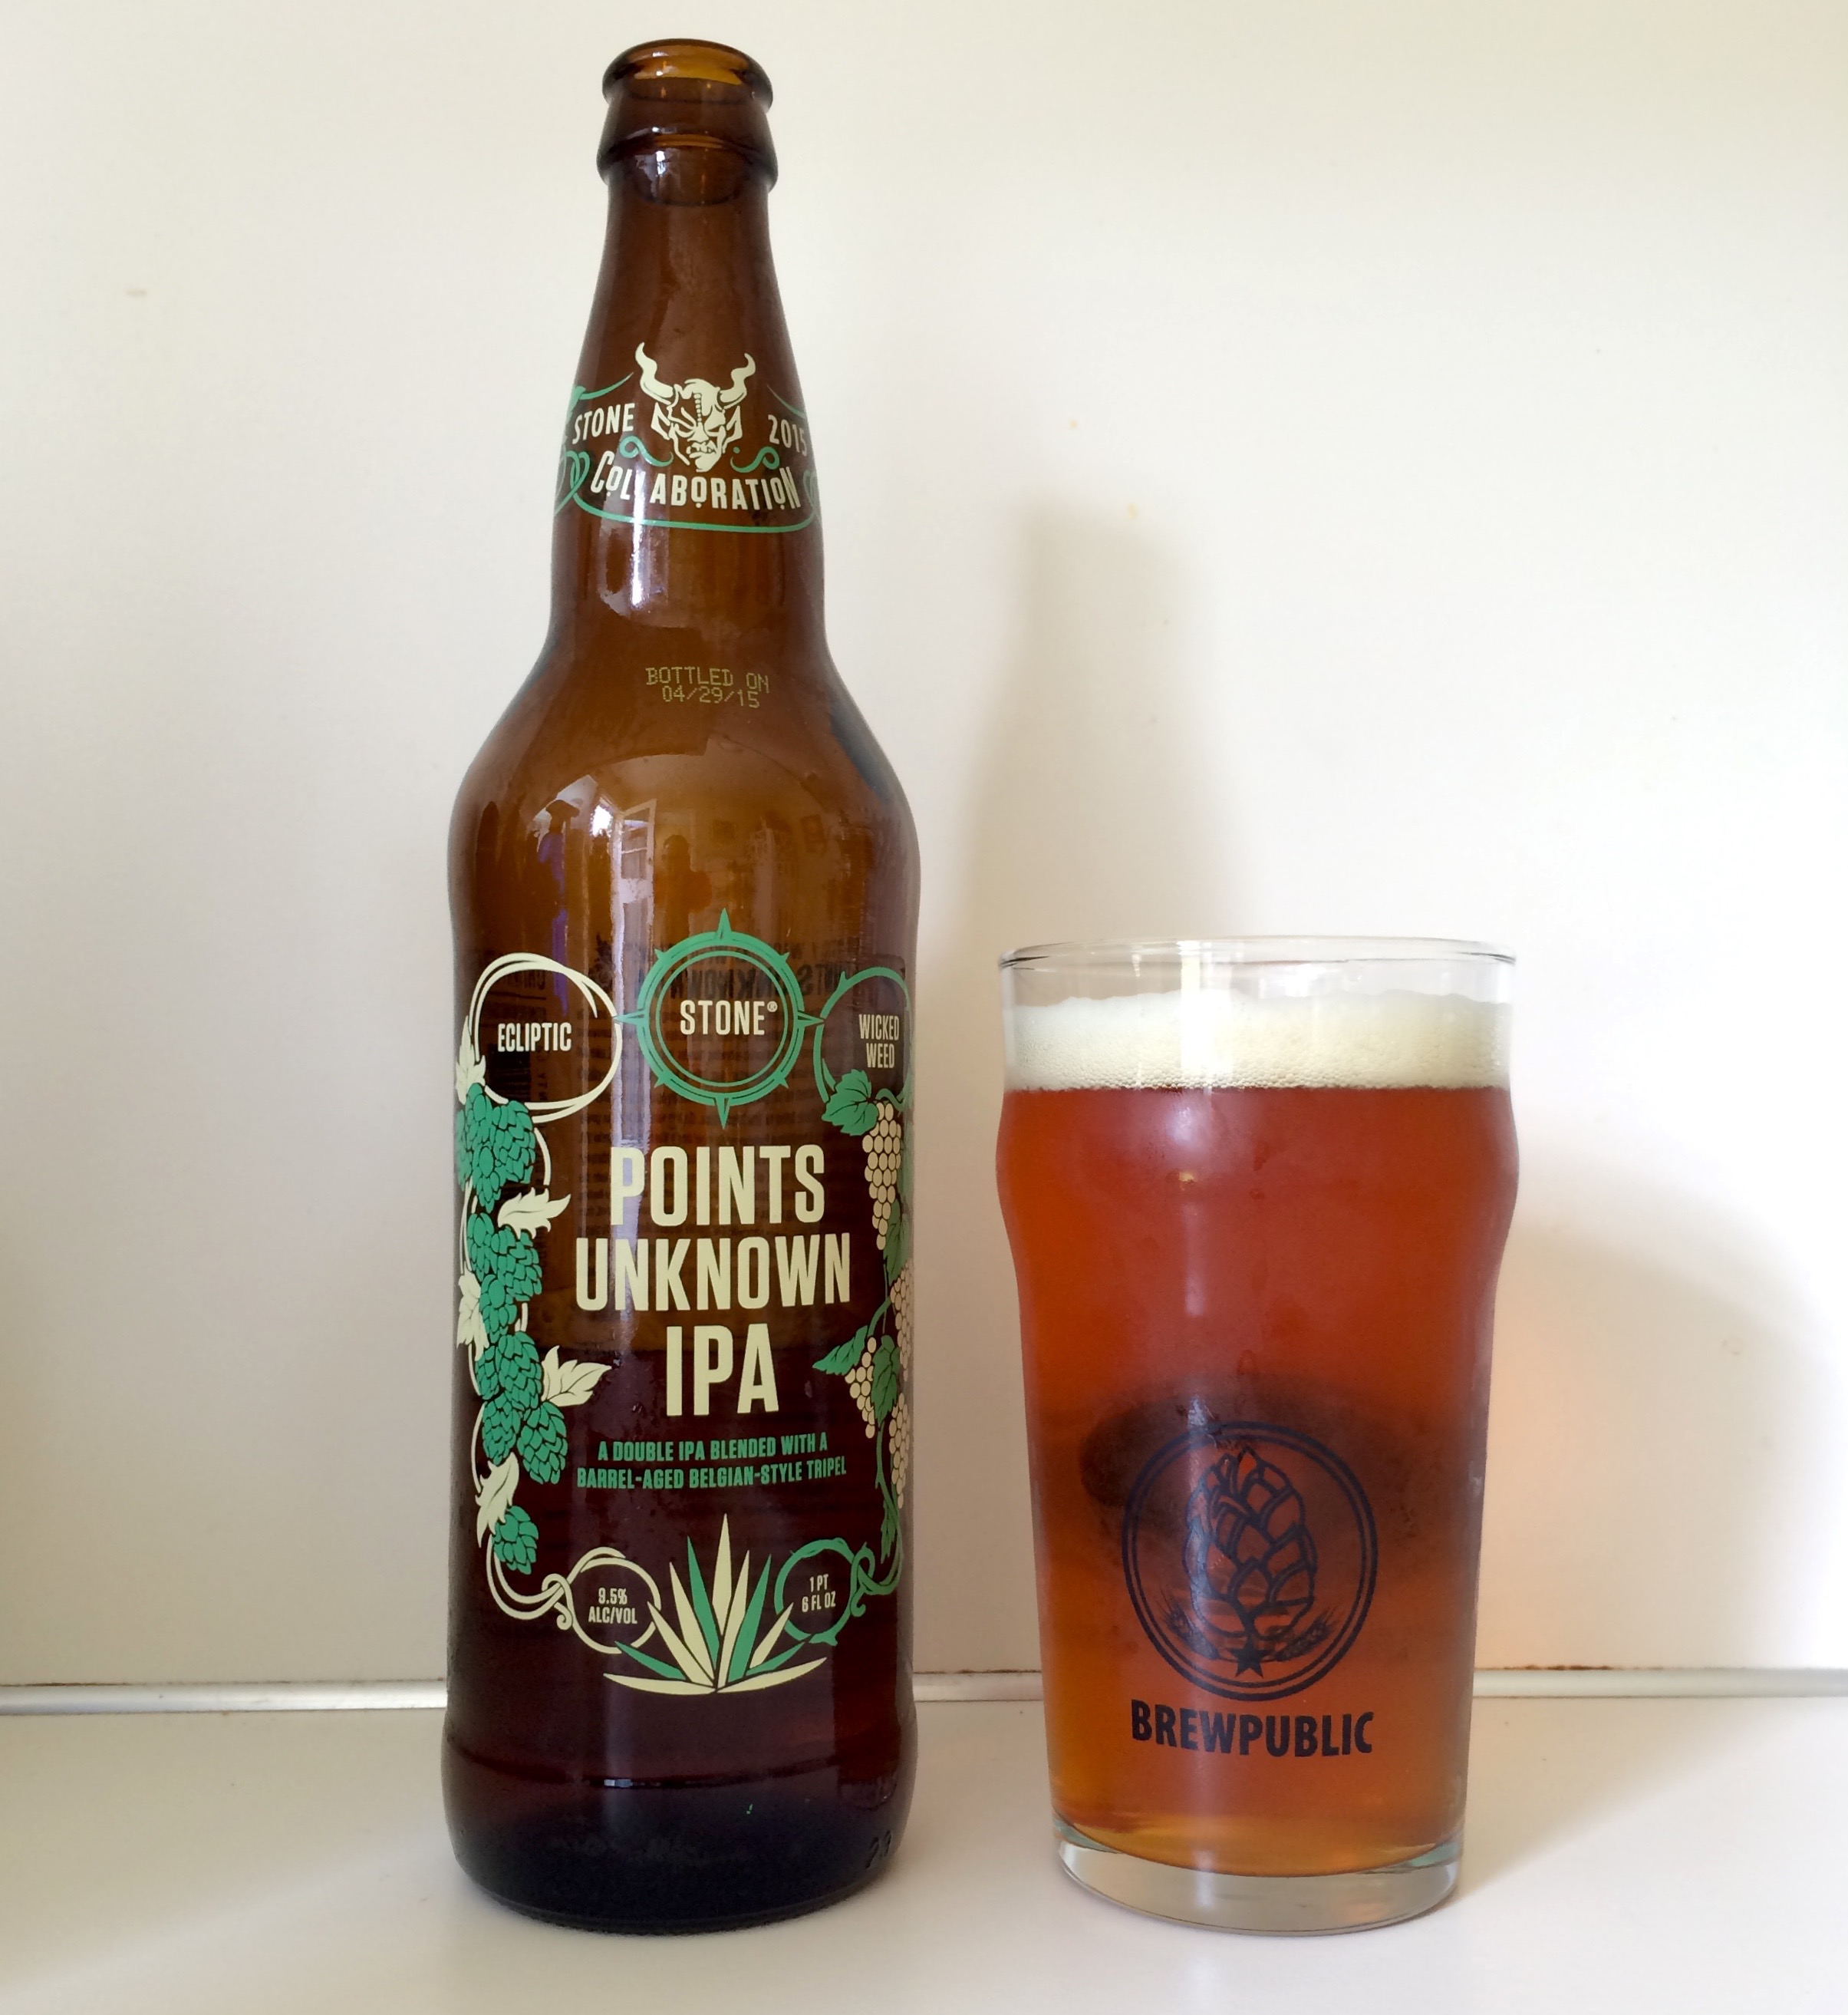 Ecliptic Brewing, Wicked Weed Brewing and Stone Brewing Points Unknown IPA Bottle Pour